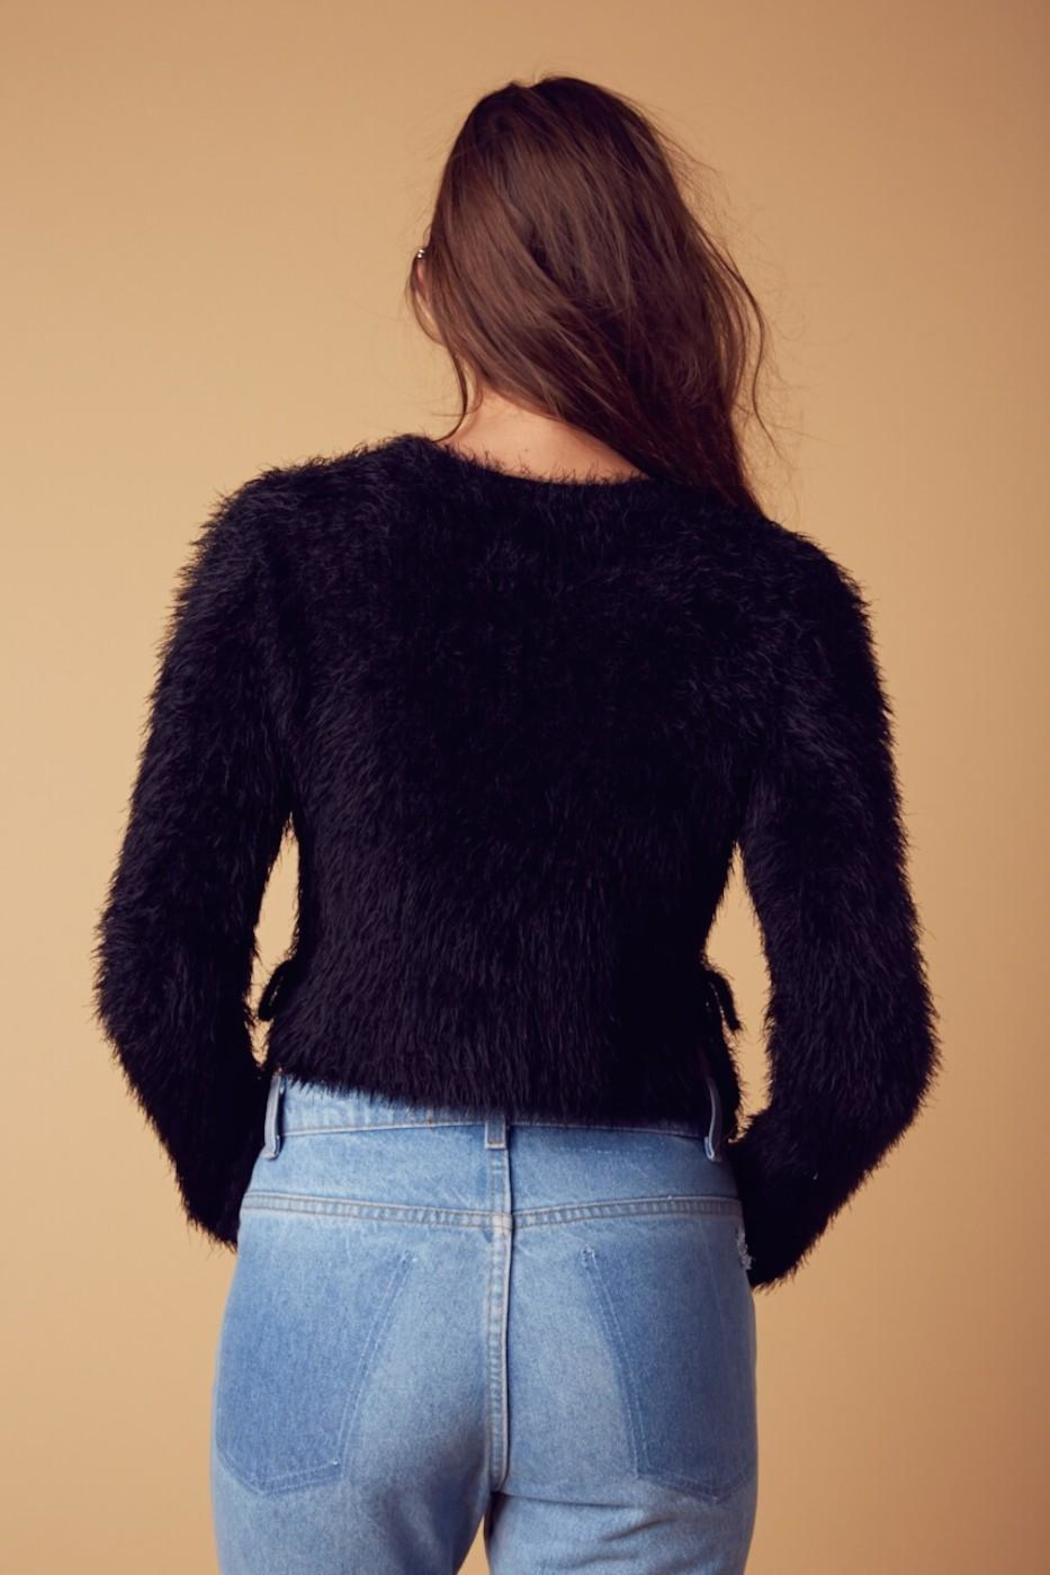 Cotton Candy Fuzzy Tie Pullover from New York by Lucia Boutique ...